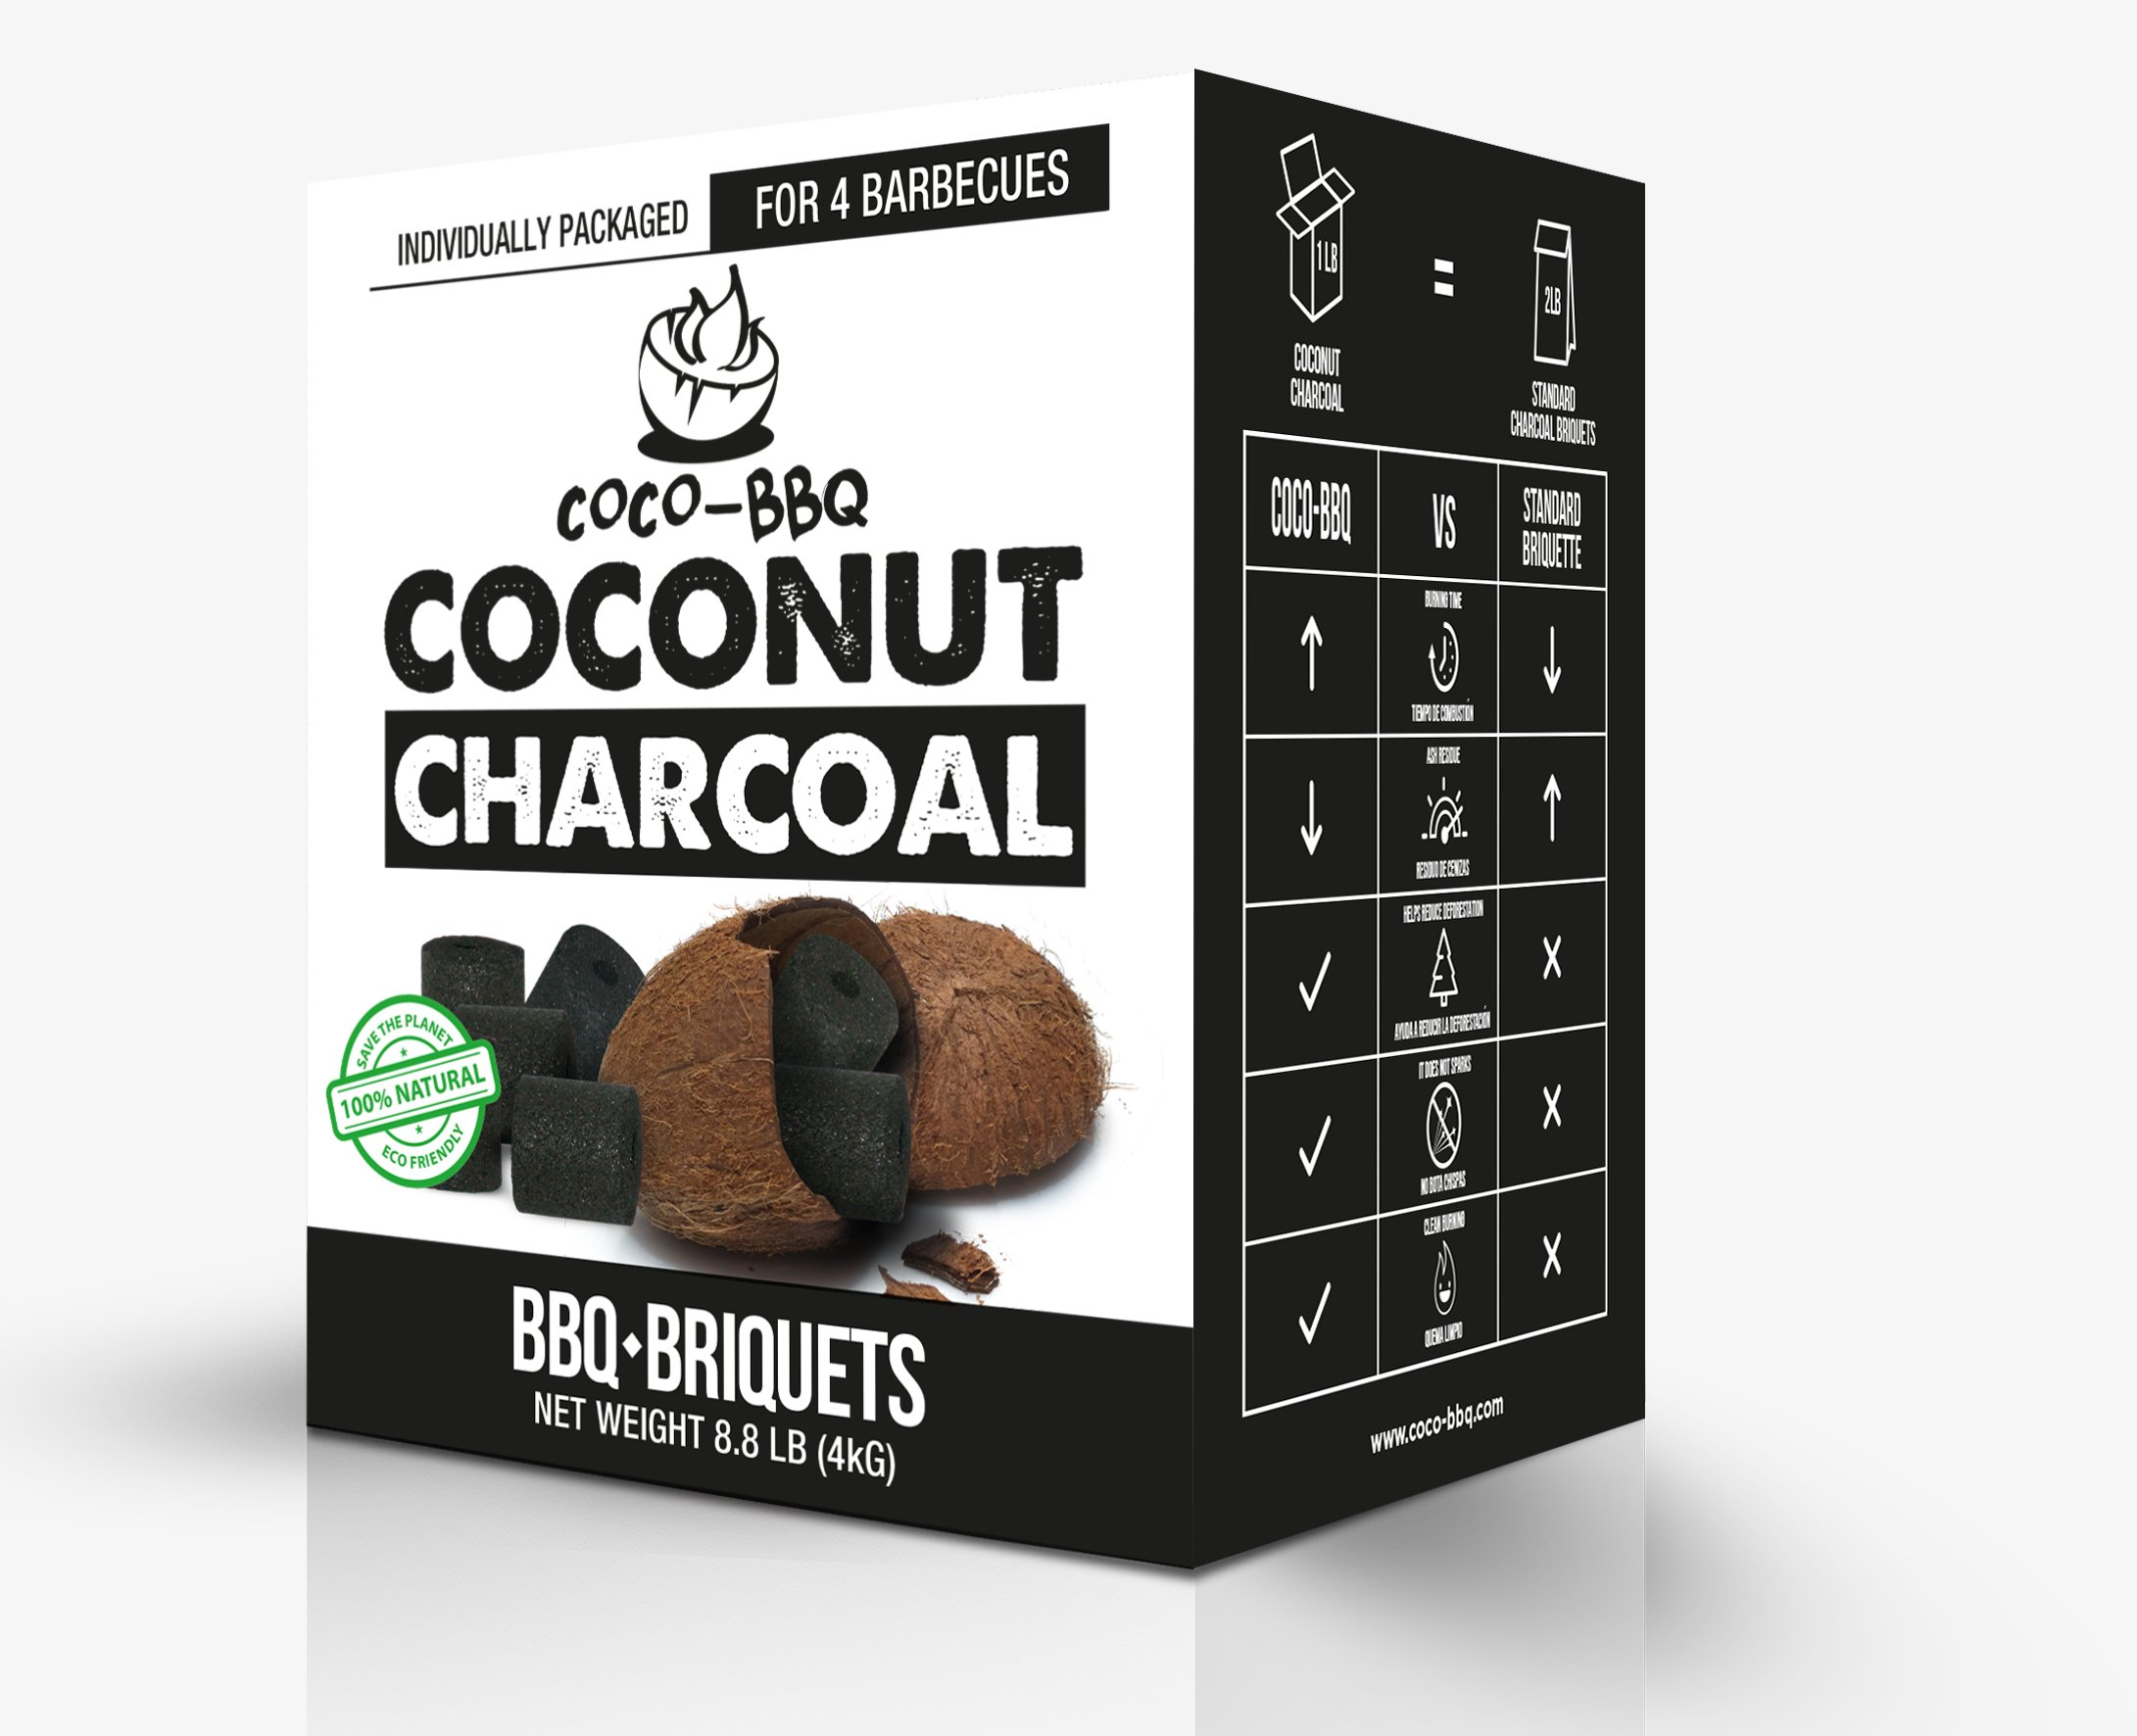 COCO-BBQ Eco-Friendly Barbecue Charcoal Made from Coconut Shells for Low and Slow Grilling by COCO-BBQ (Image #4)